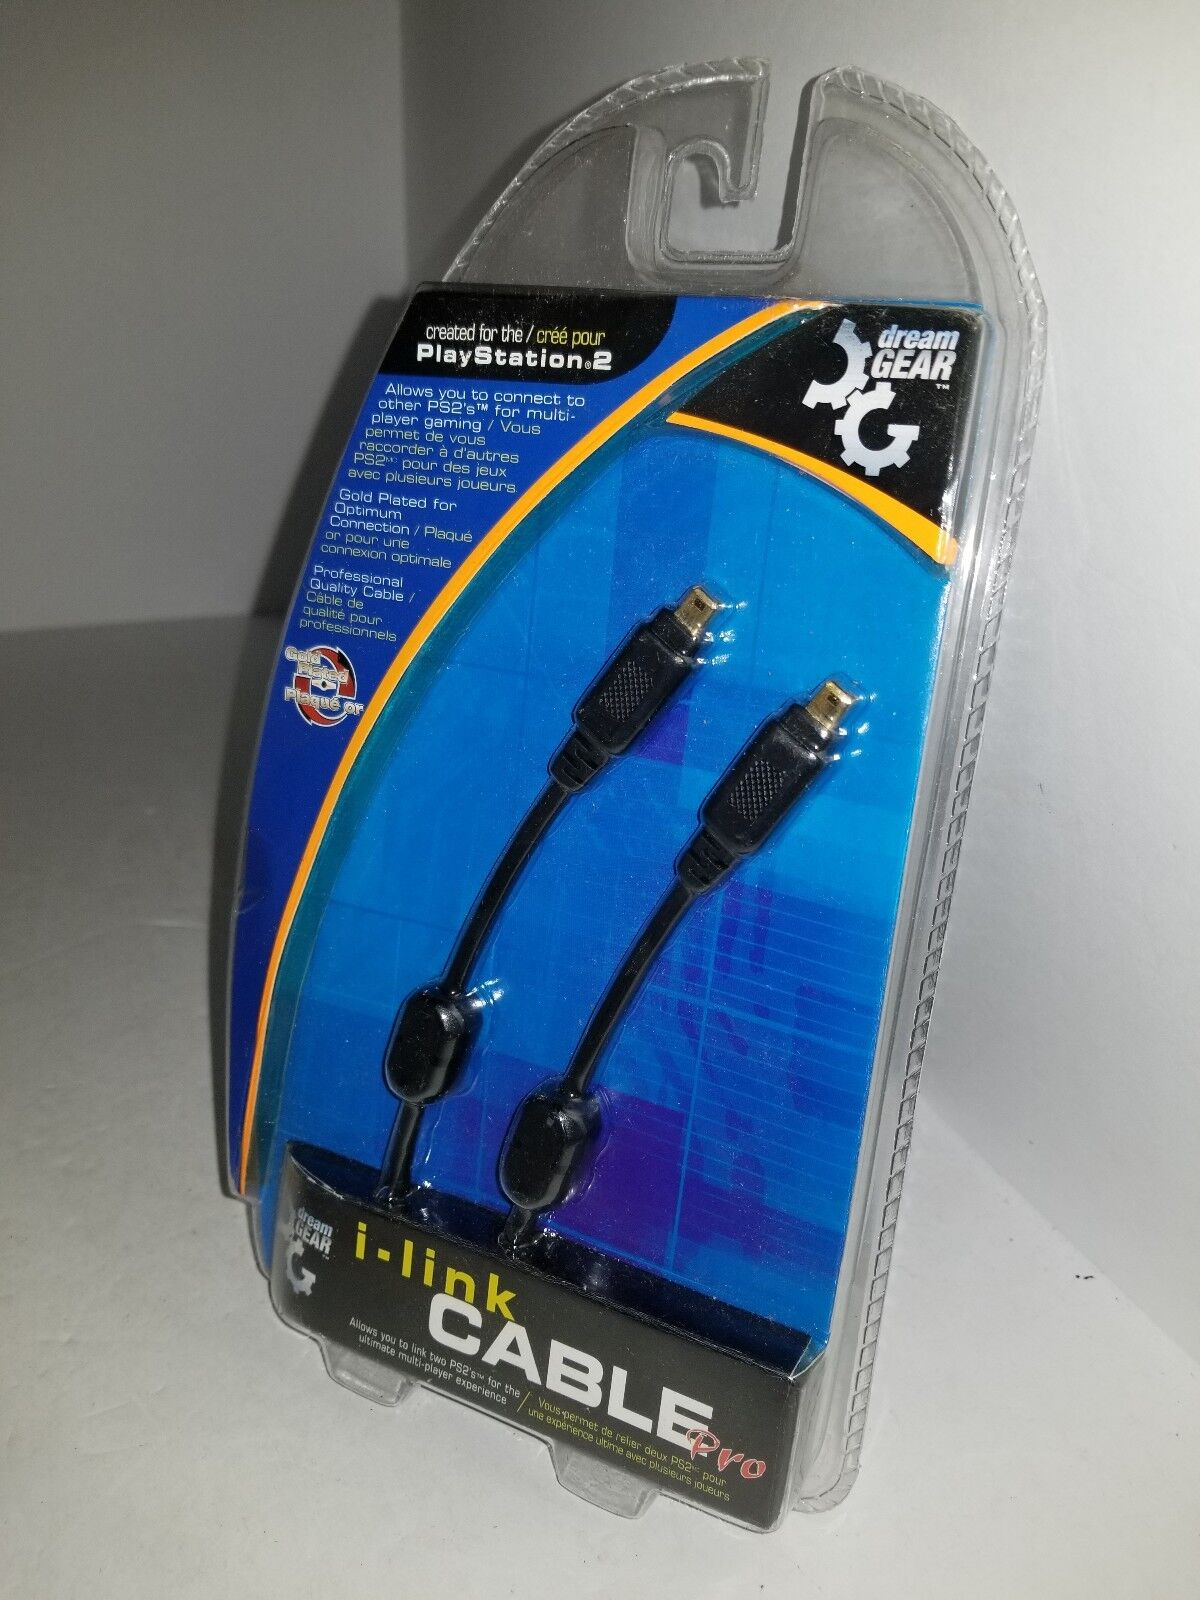 10 LOT 3' Gold FIREWIRE DV I-LINK CABLE IEEE 1394 4 to 4 Pin for PS2 M24